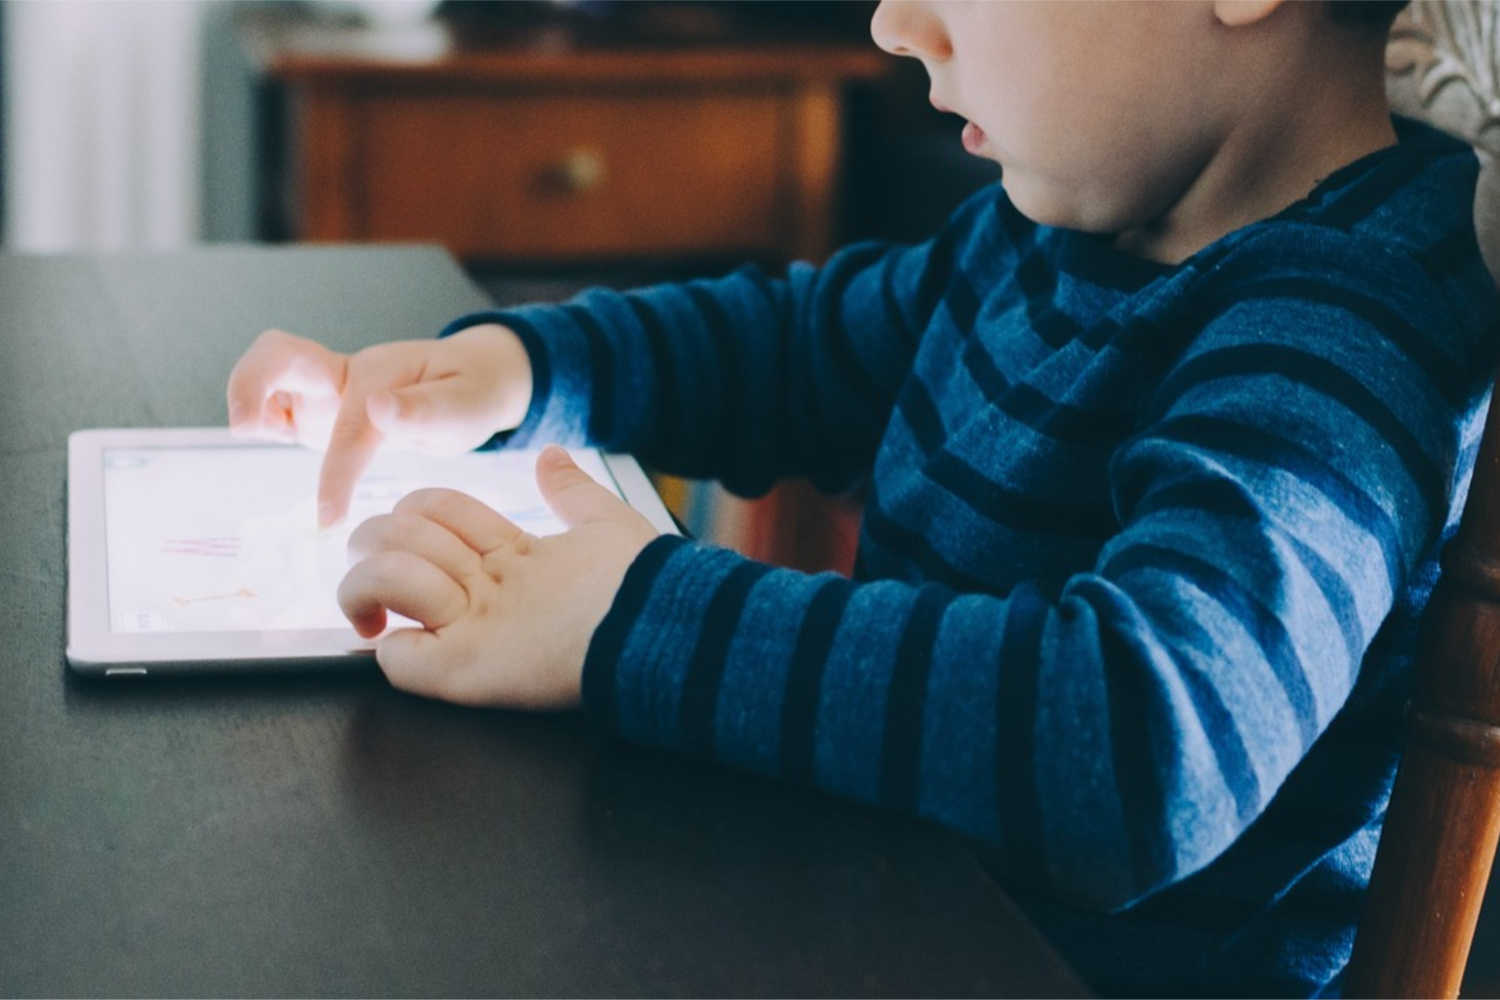 LET'S TALK ABOUT SCREEN TIME!